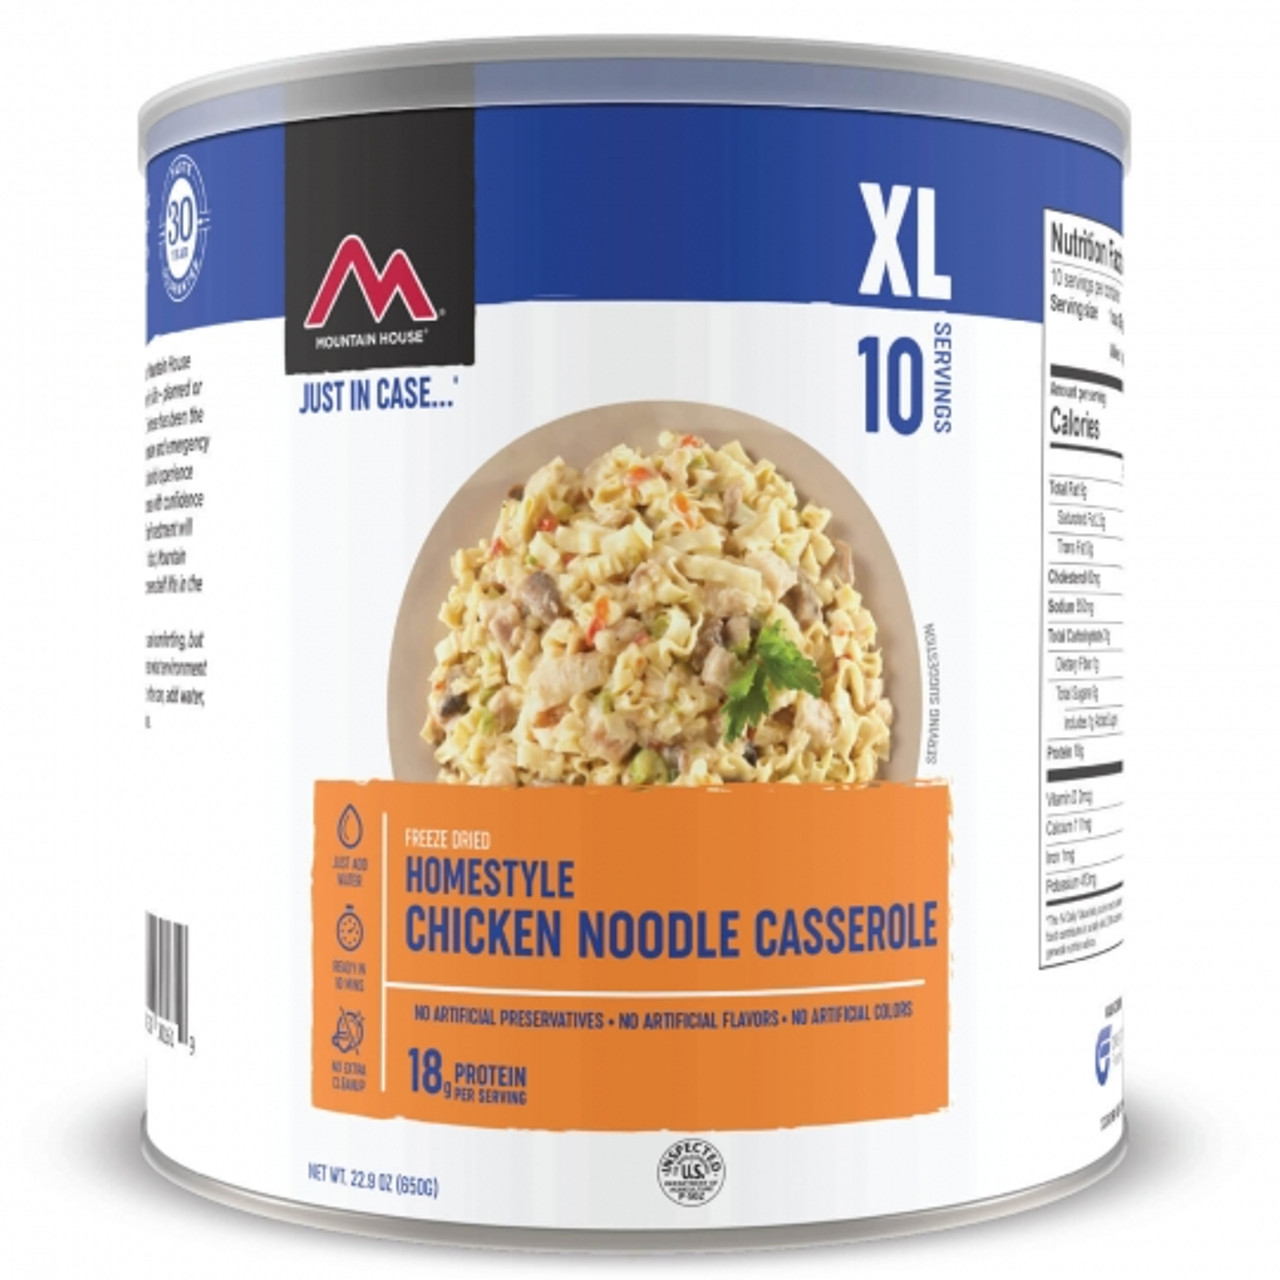 Mountain House Chicken Noodle Casserole#10 Can